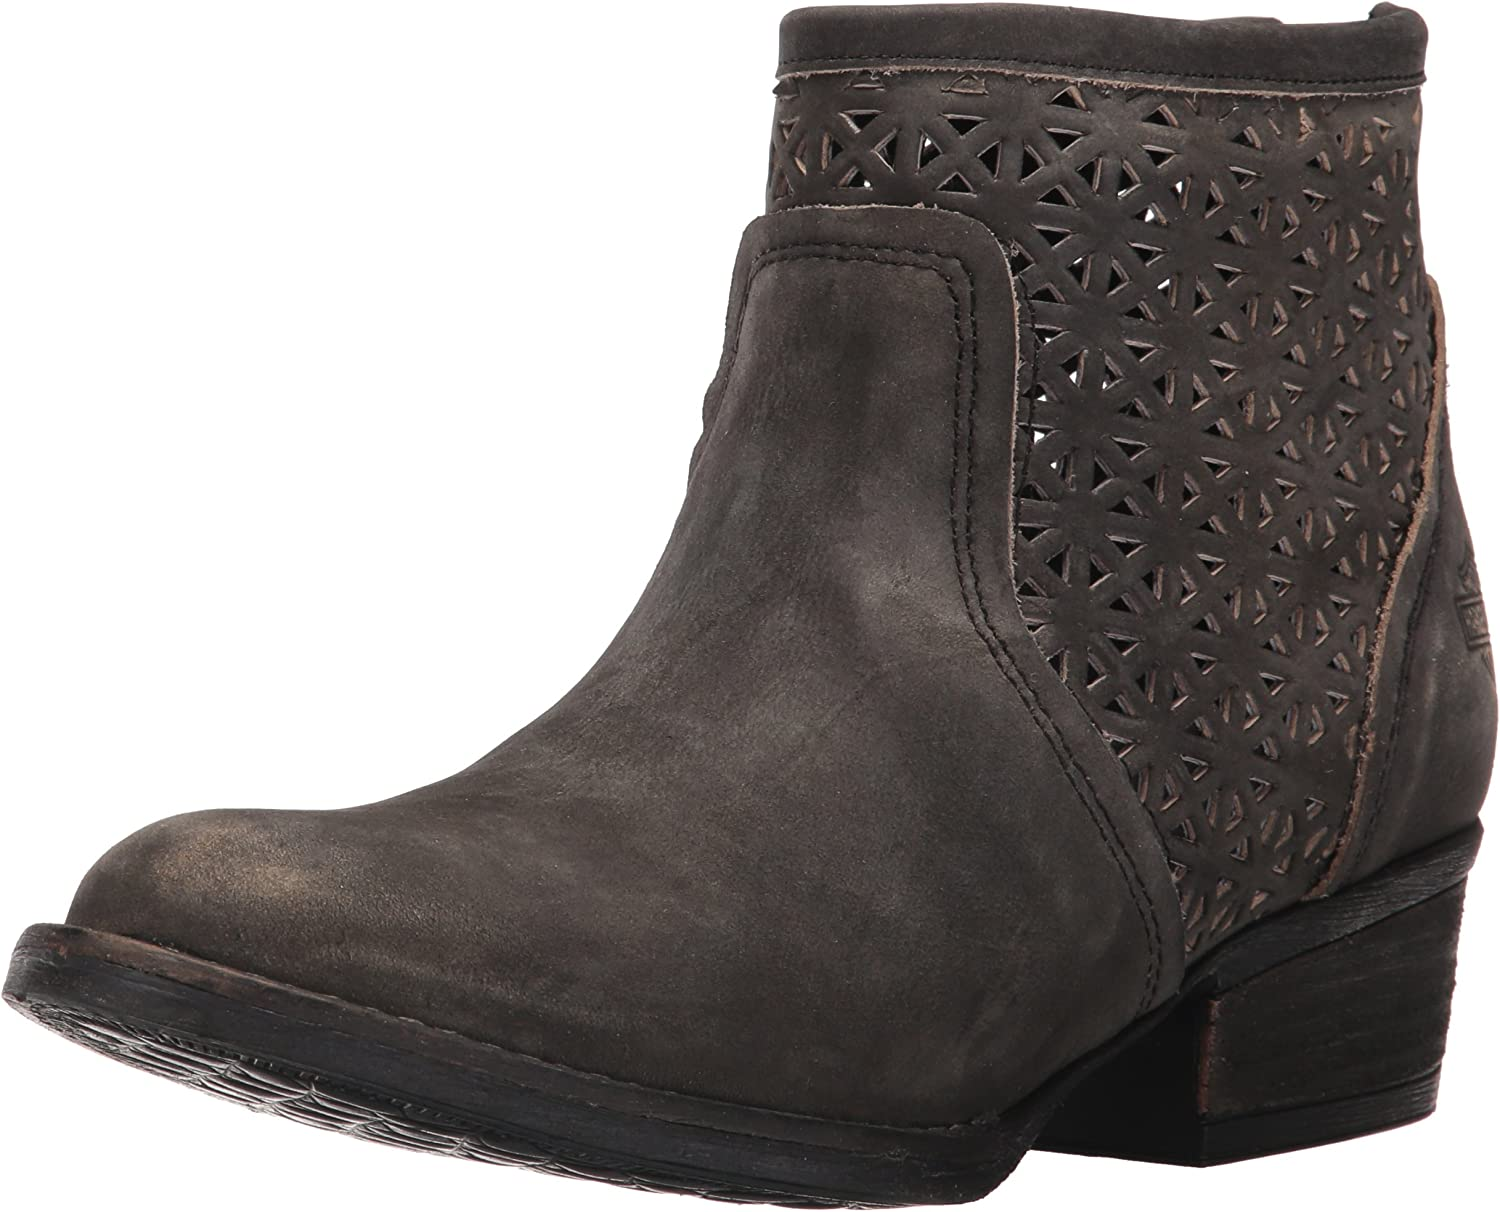 Harley-Davidson Womens Liam Ankle Bootie